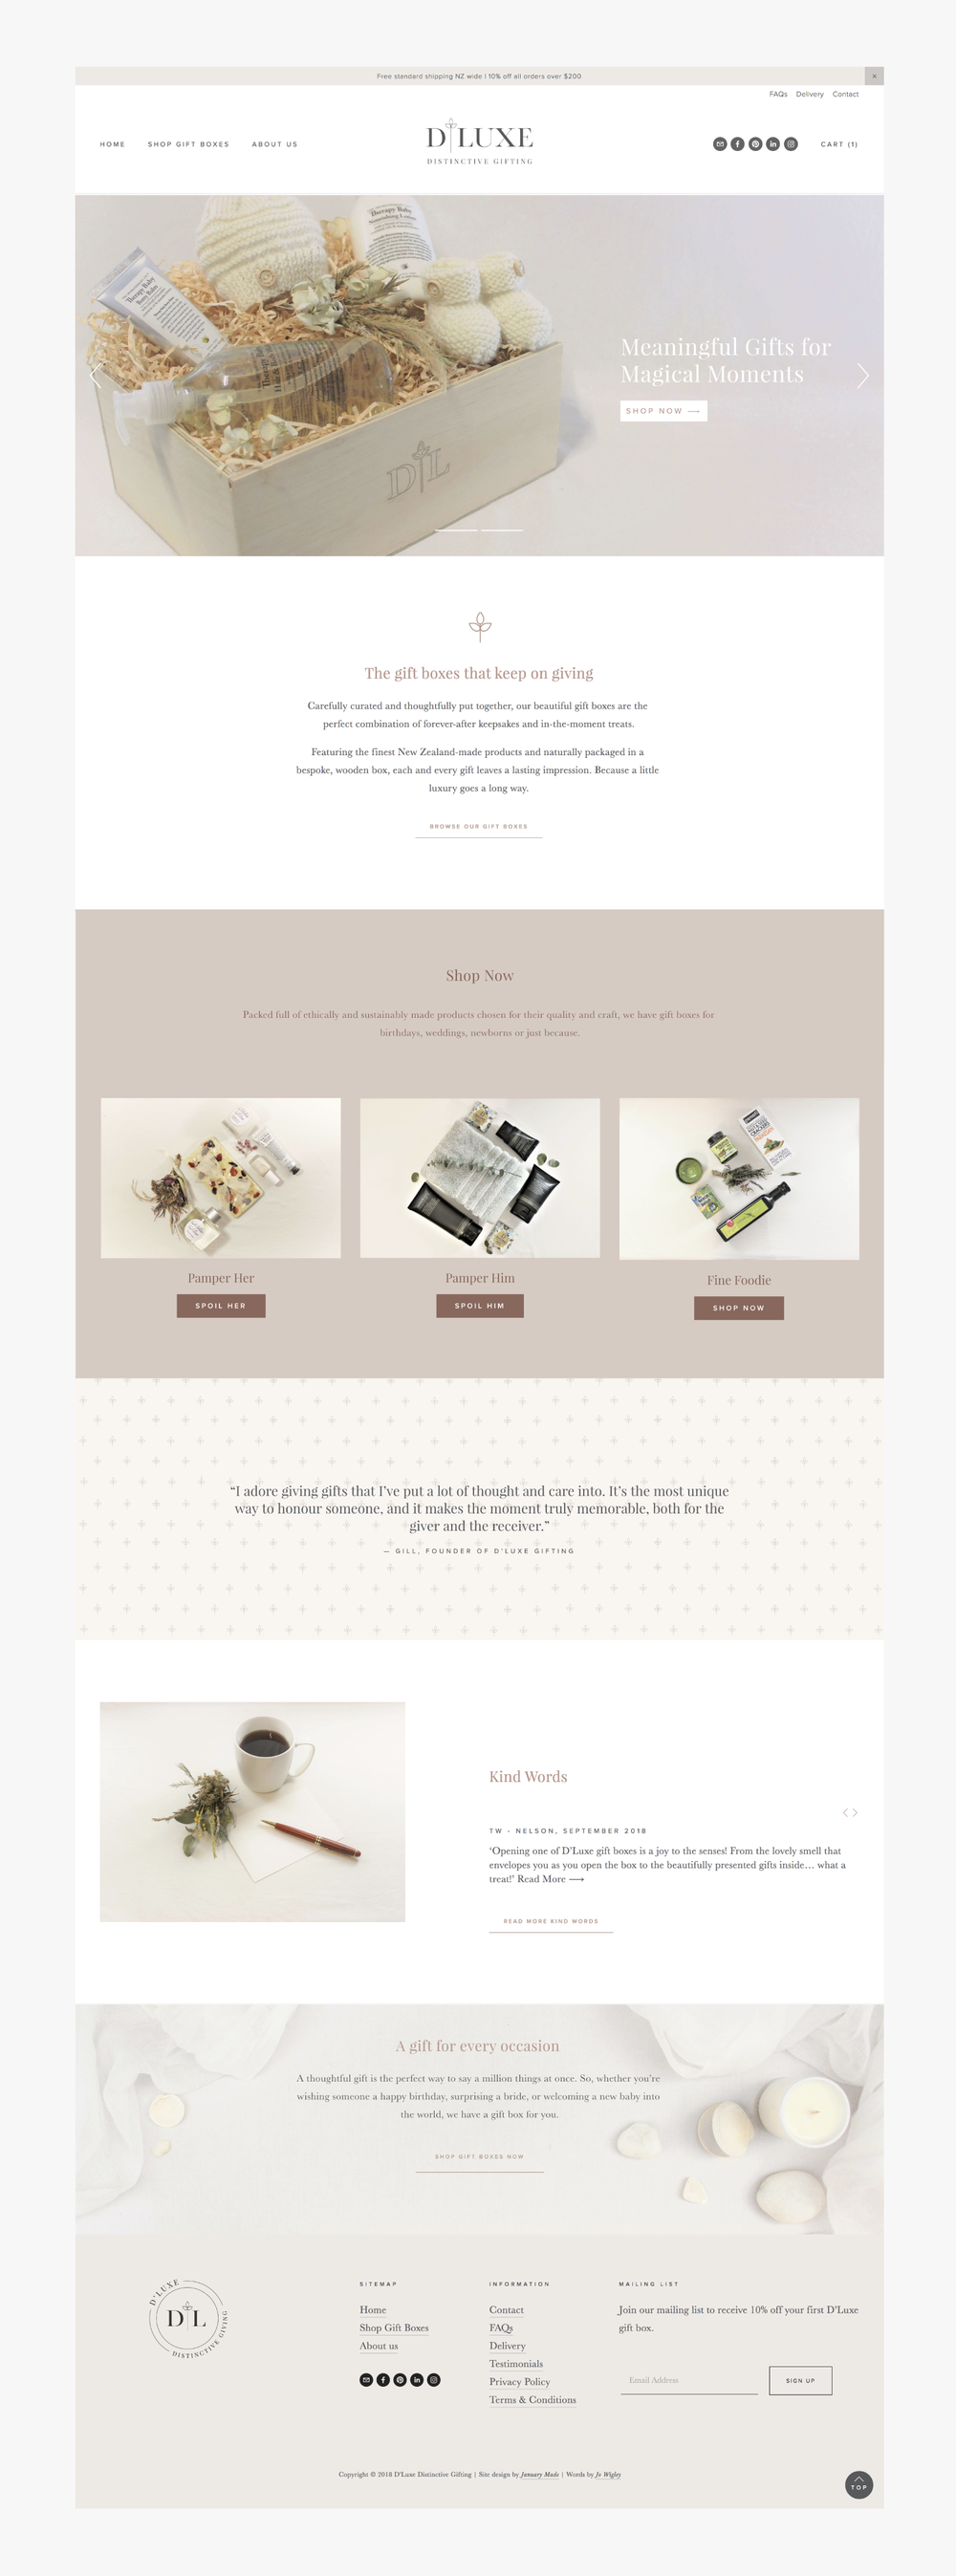 D'Luxe Distinctive Gifting website - January Made Design